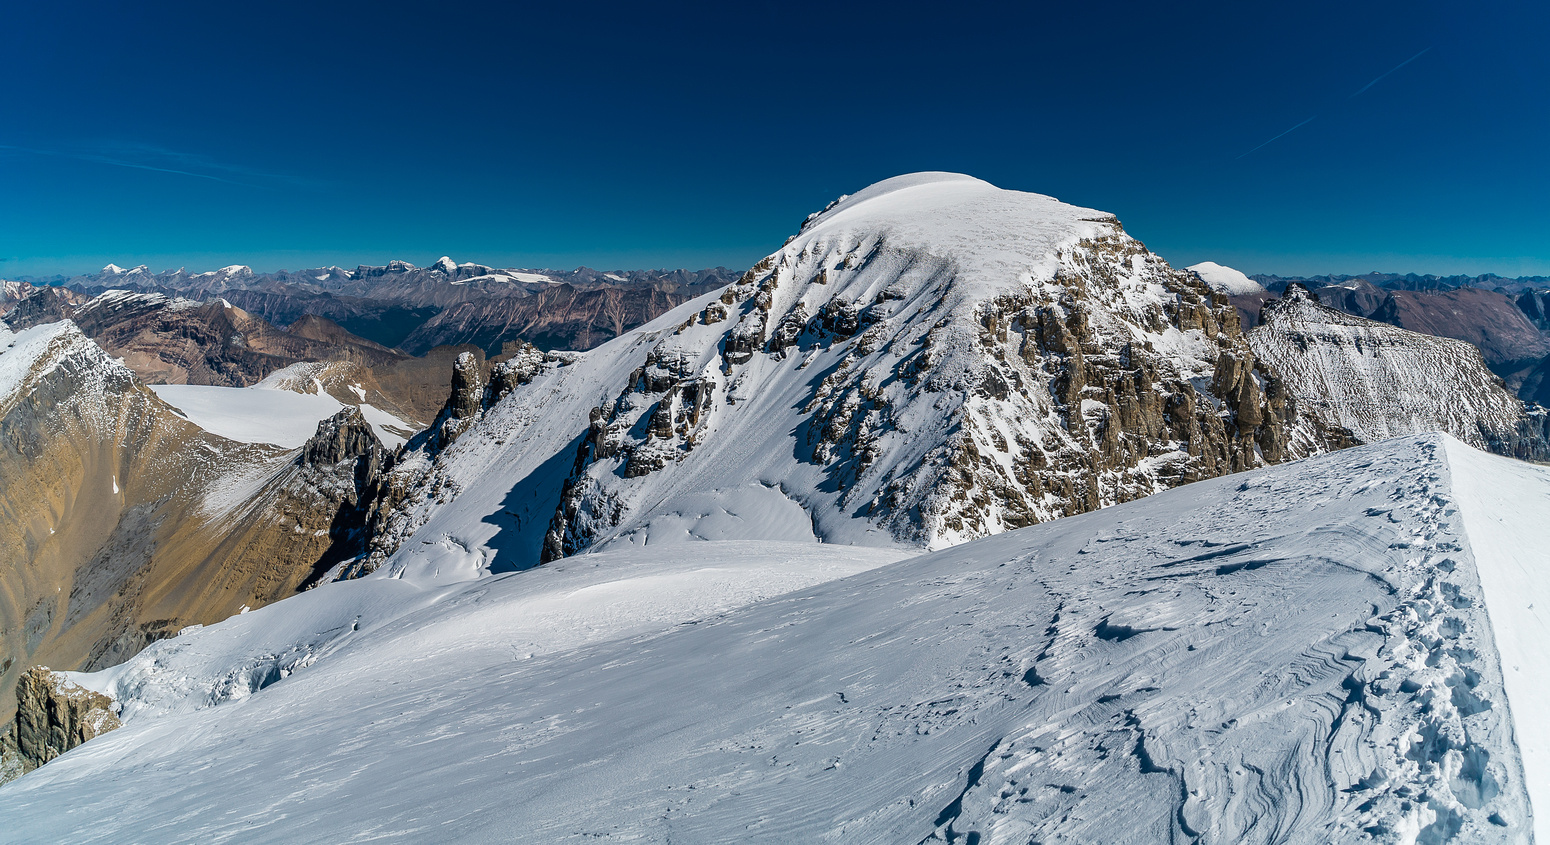 Easy terrain to the Diadem col, but there are crevasses here so be cautious.